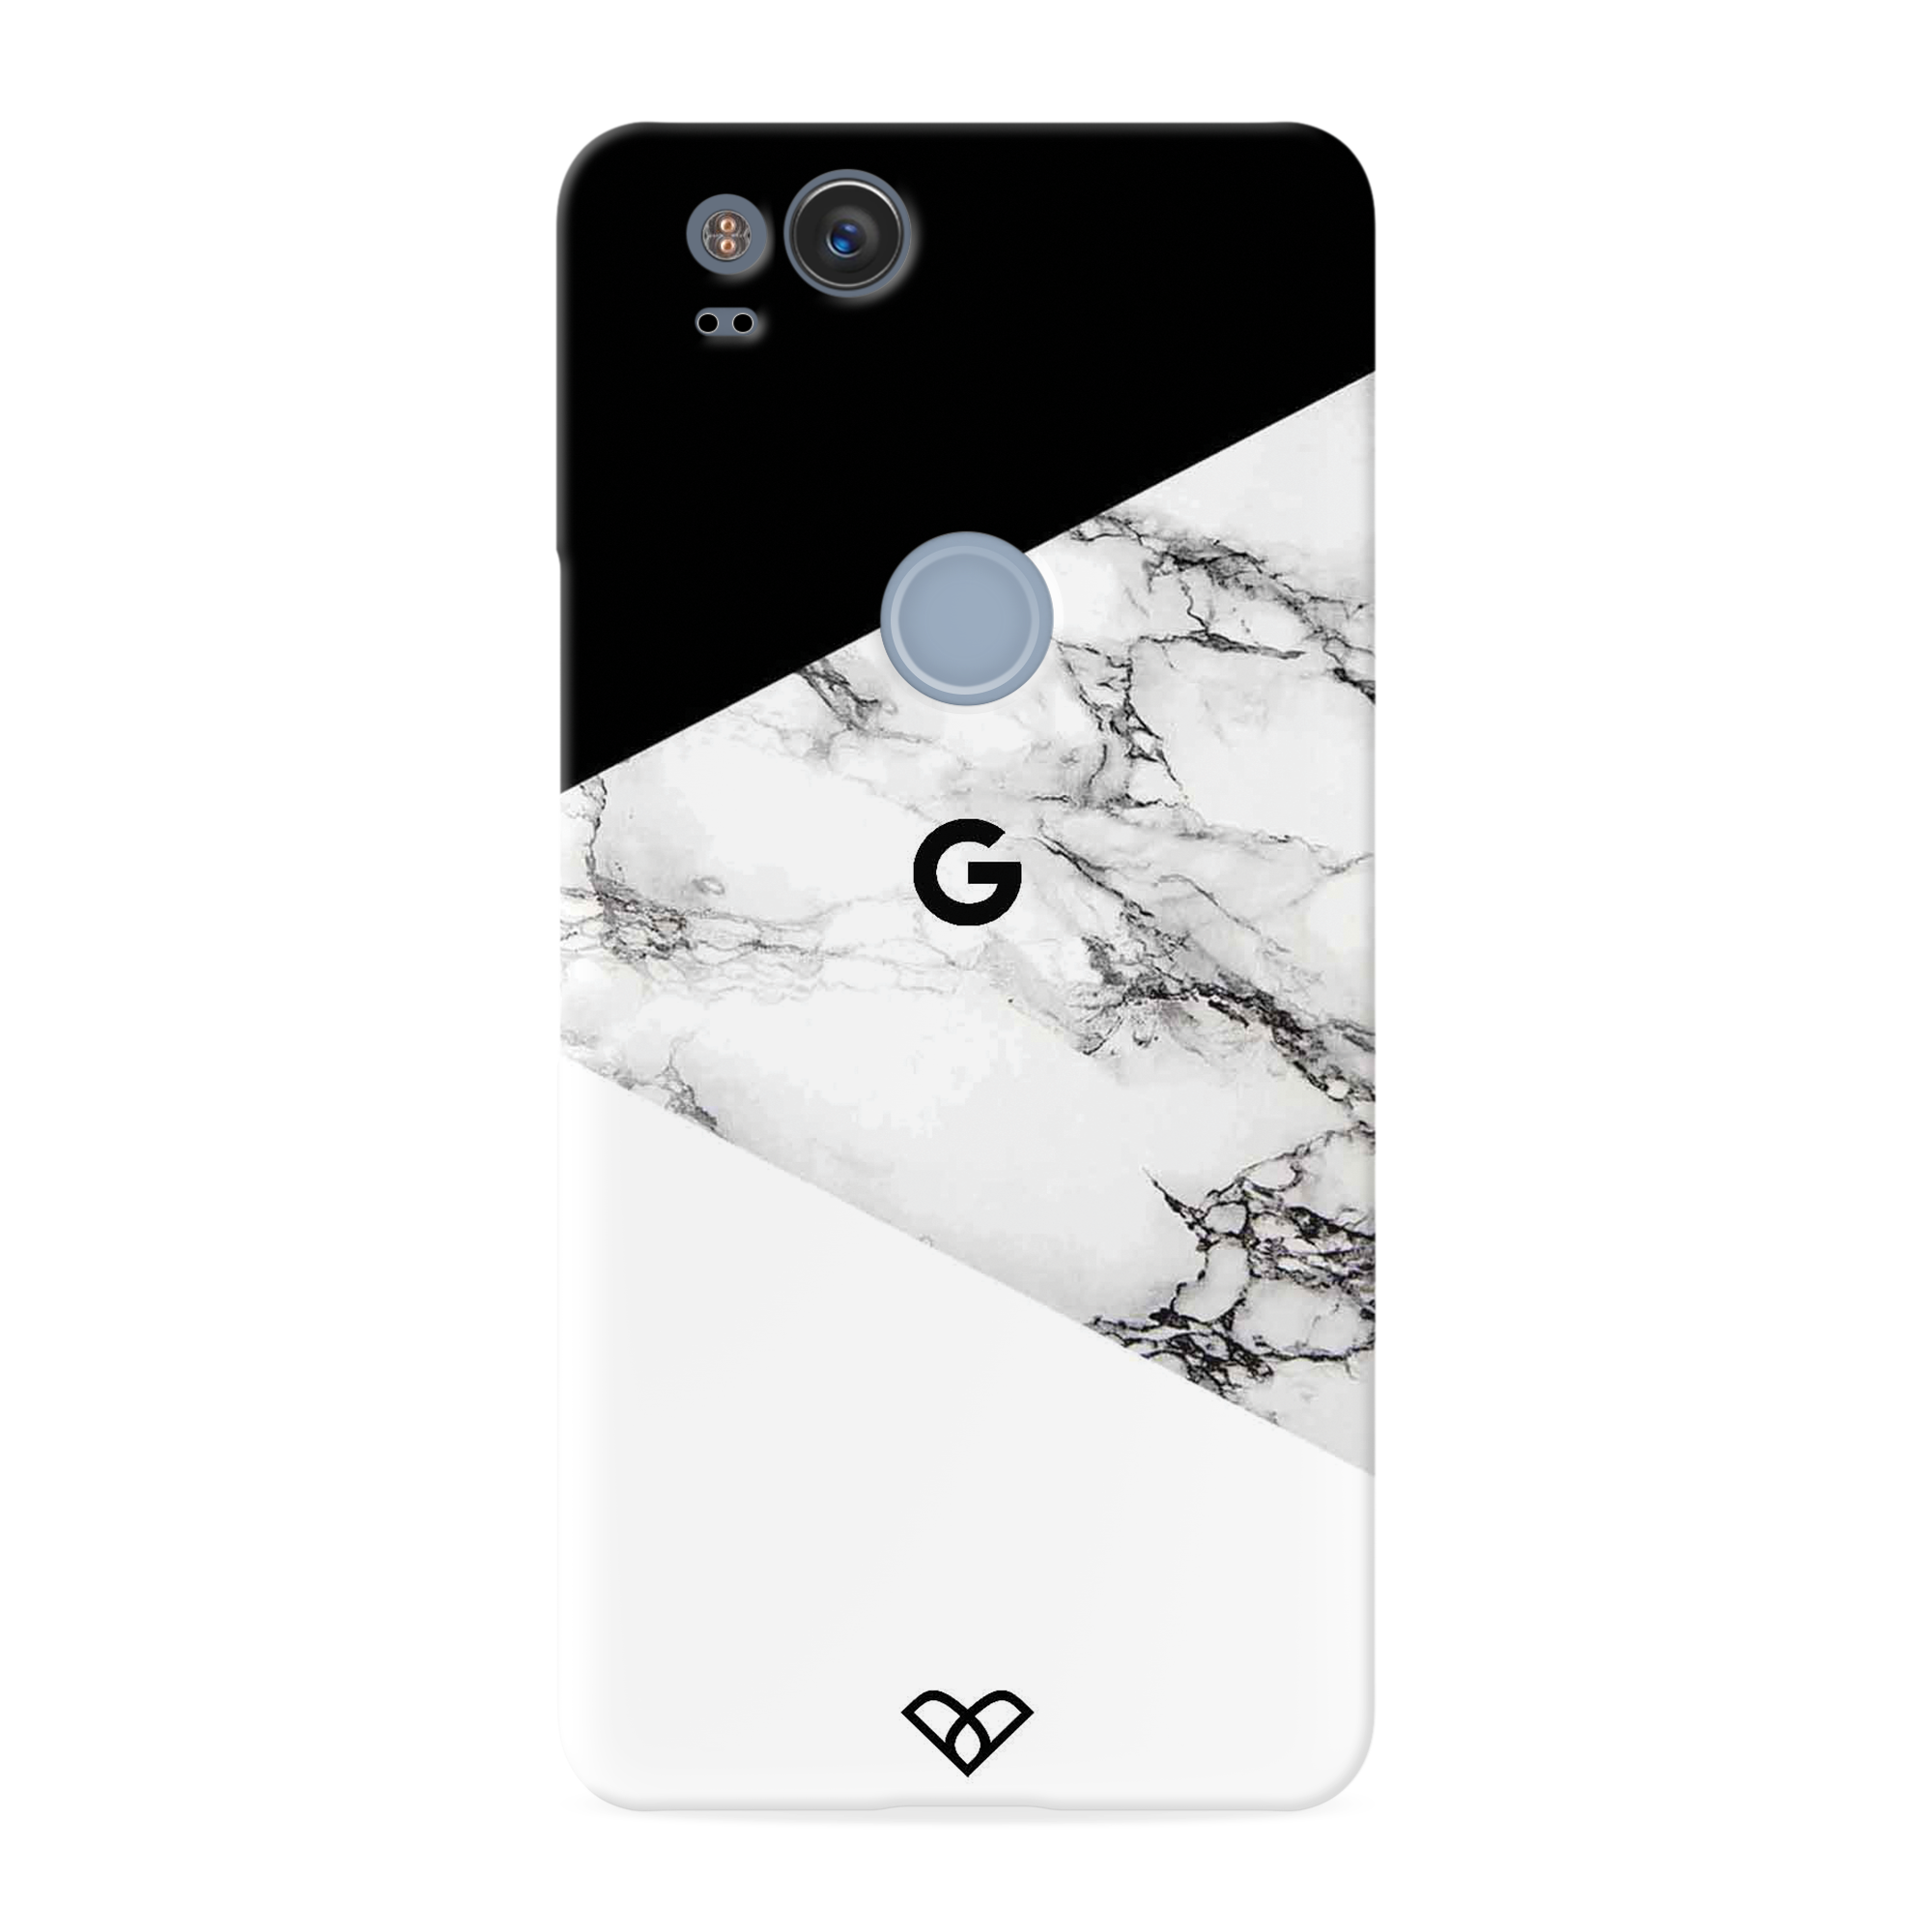 Geometric White Marble Textured Slim Case And Cover For Pixel 2